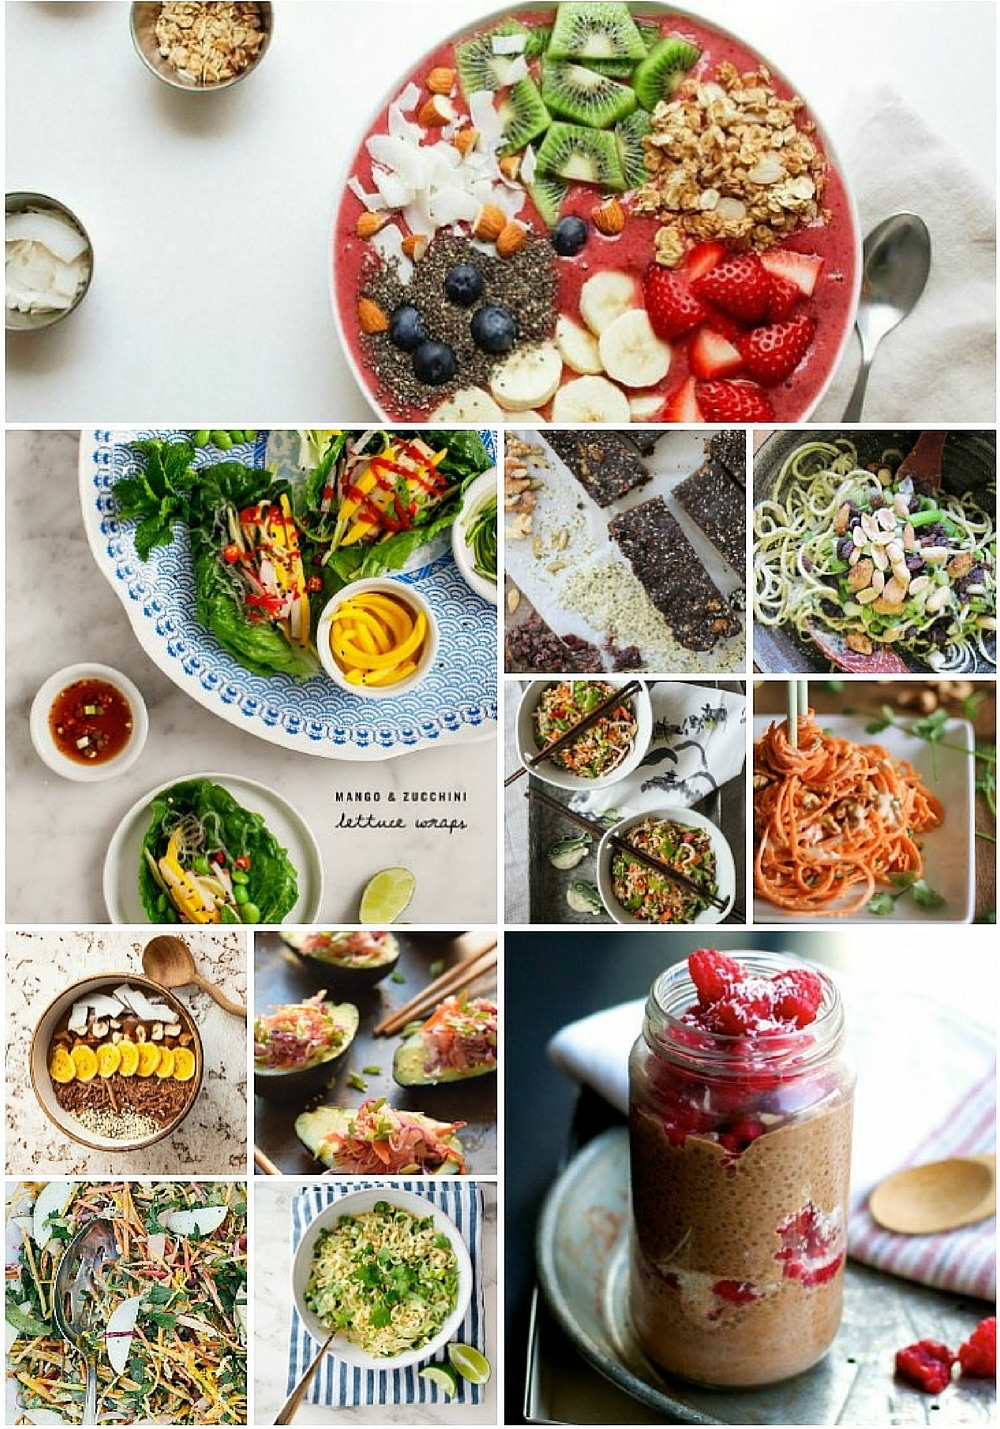 21 awesome raw food recipes for beginners to try yuri elkaim forumfinder Images